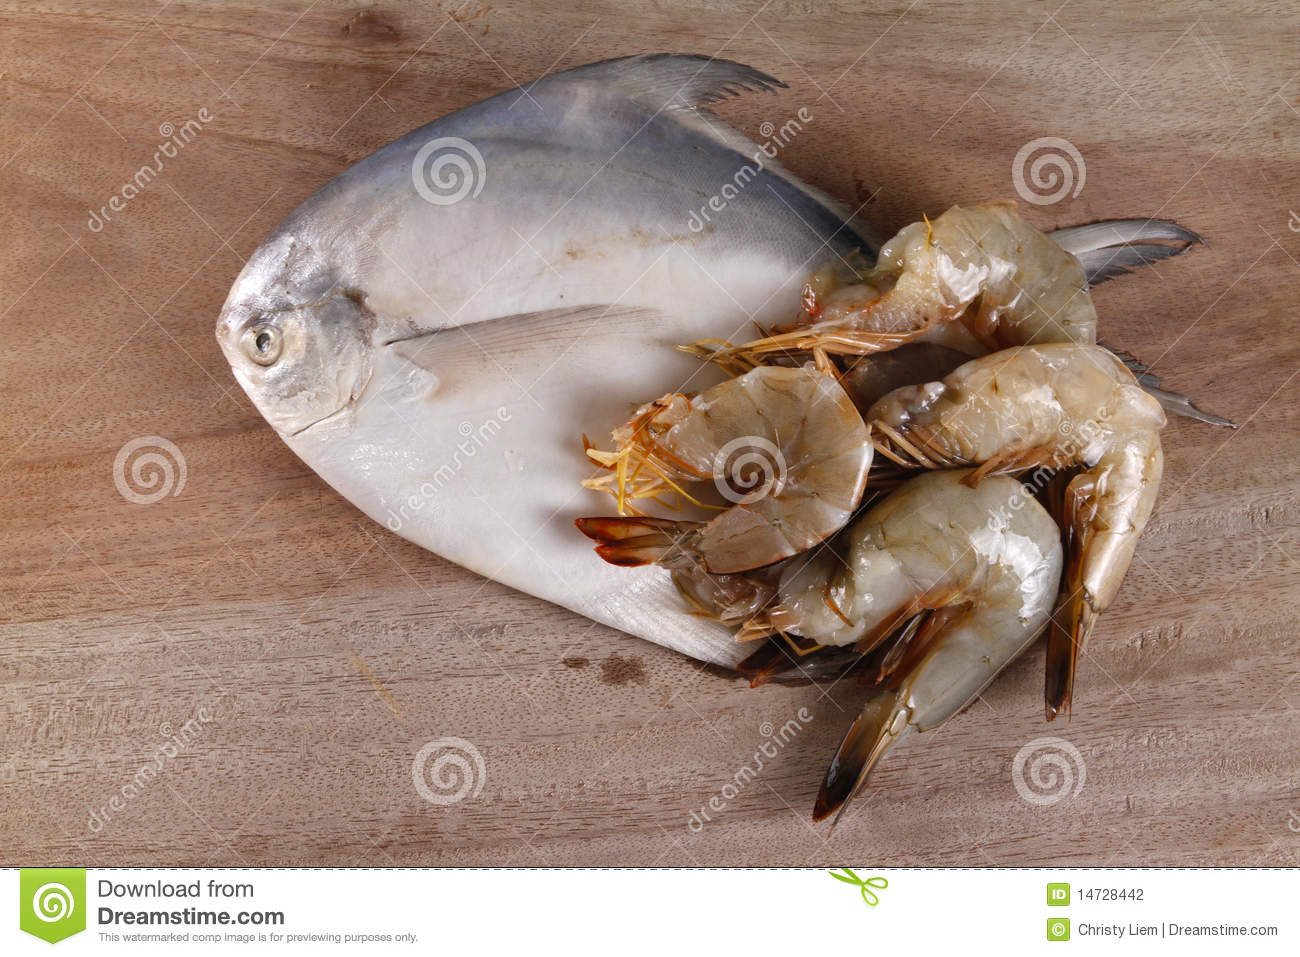 Silver Pomgfret Fish And Prawns Stock Photo - Image of